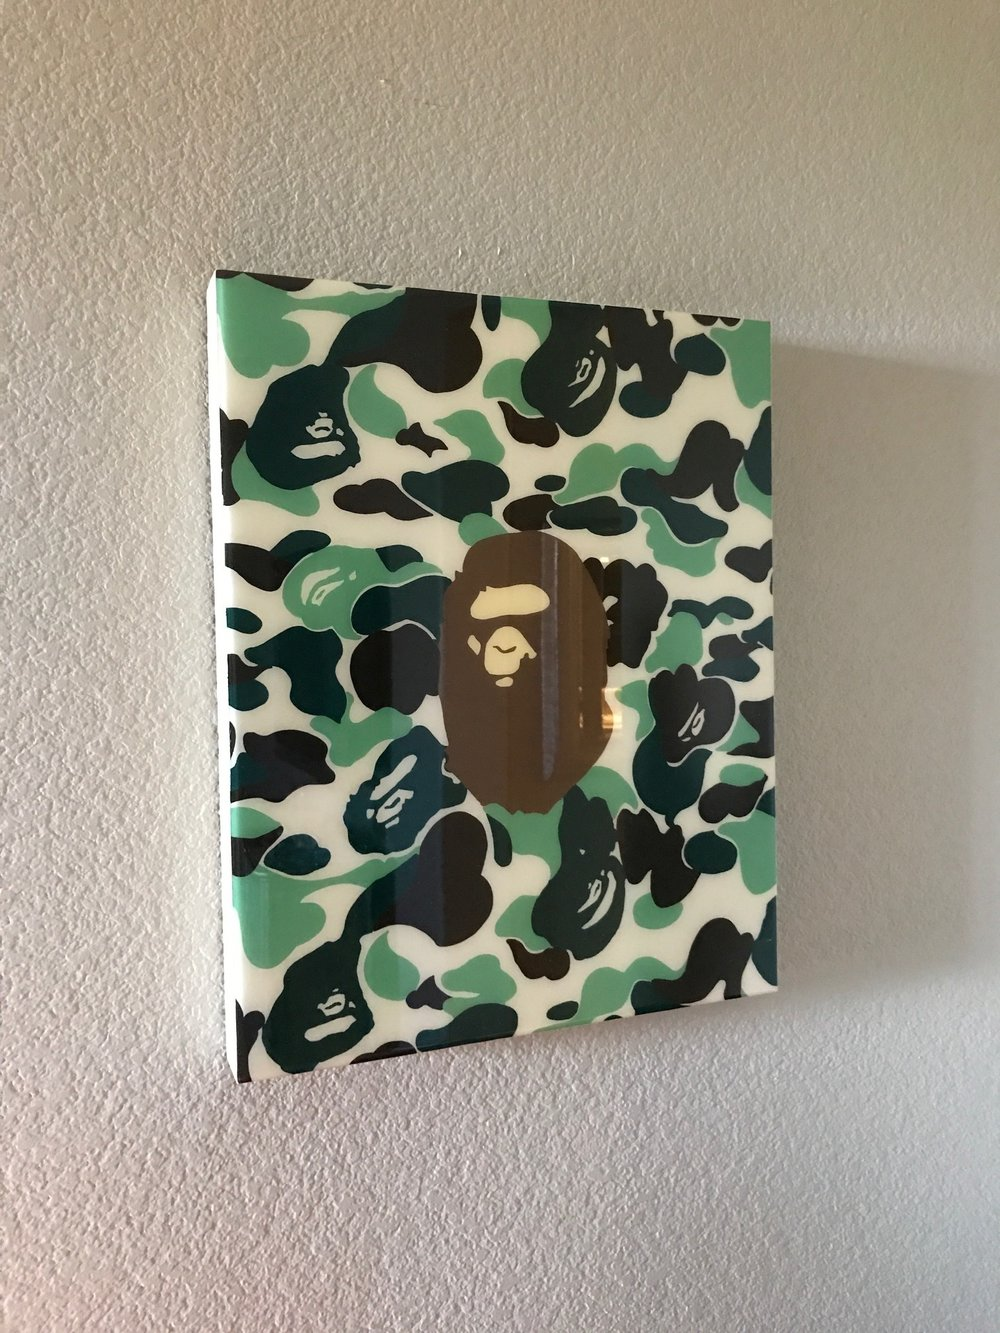 "BAPE THEMED PANEL, 16"" X 20""' ACRYLIC ON WOOD PANEL WITH RESIN"